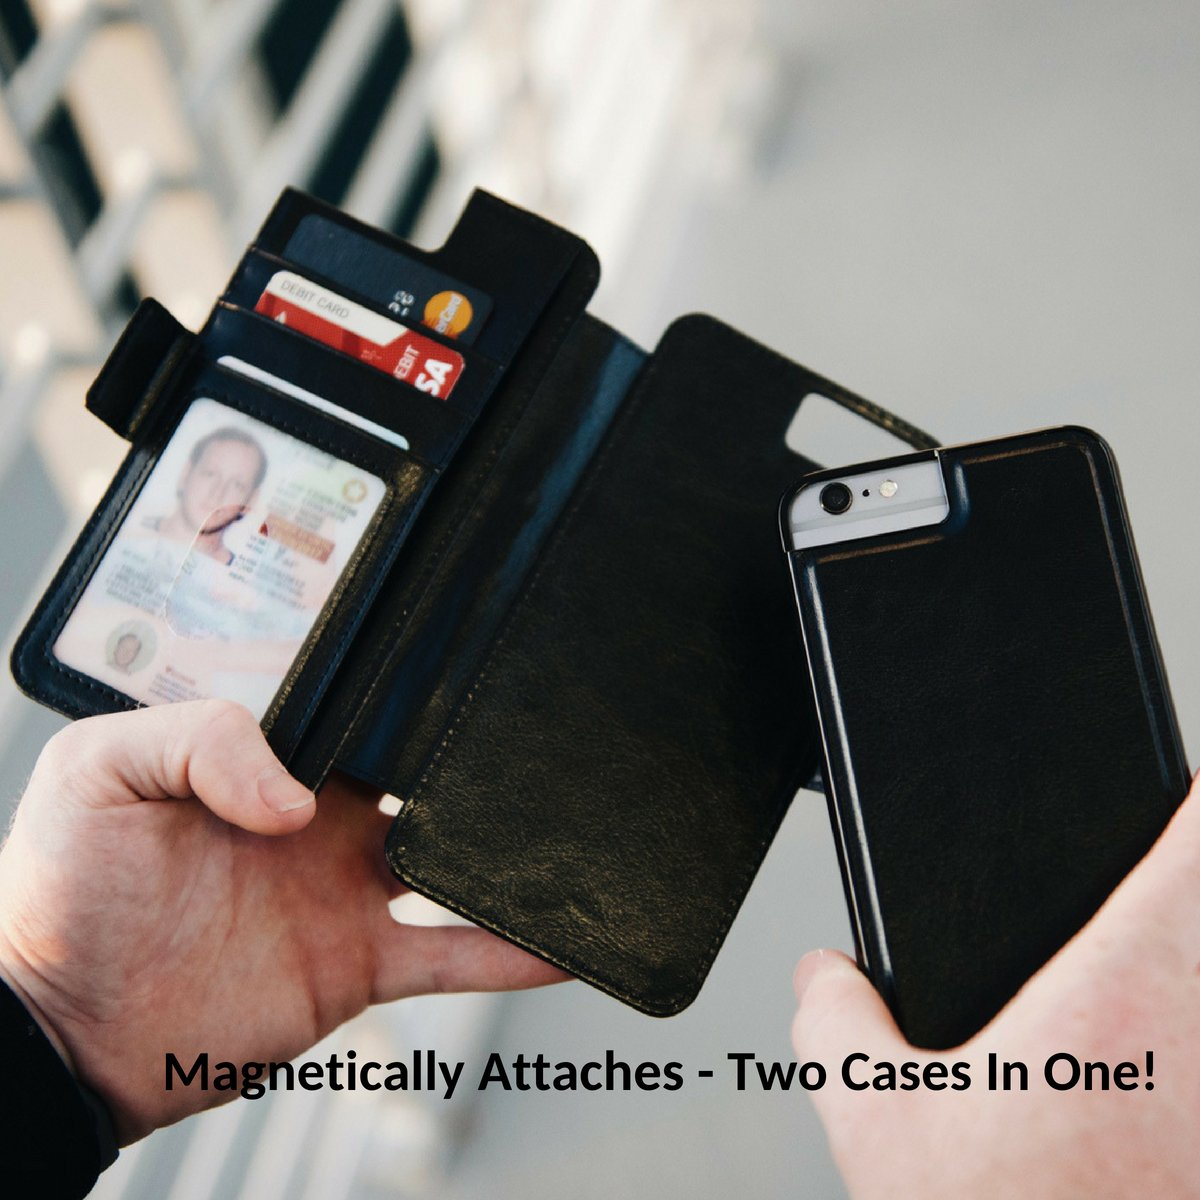 Dark Horse Travel Thru View 7+ Wallet Case - Compatible with iPhone 7 Plus - Luxury Vegan Leather & Detachable Magnetic Shell | RFID Protection - Jet Black by Dark Horse Travel (Image #3)